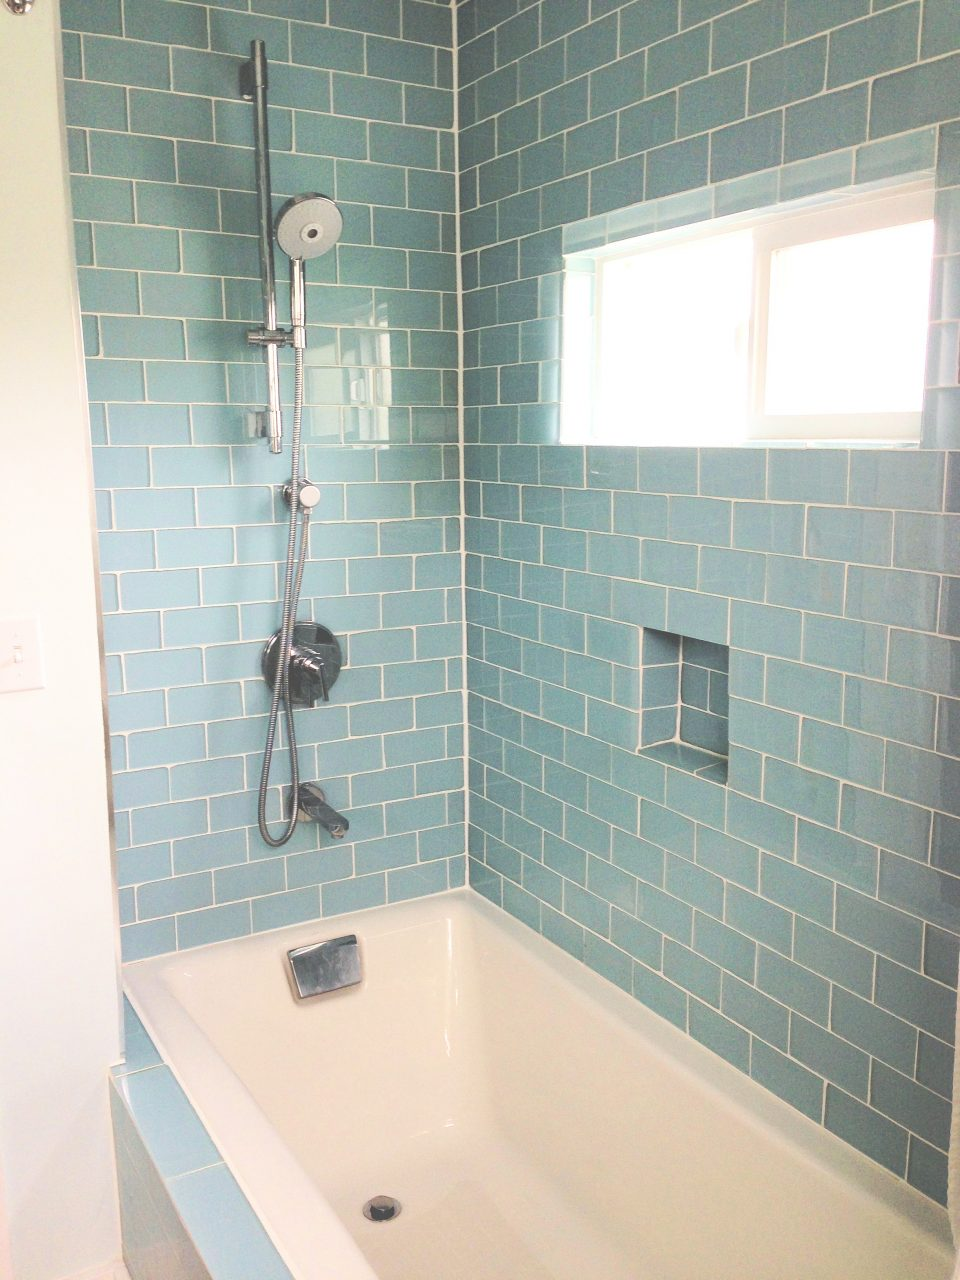 Blue Wall Tile Connected White Bathtub And Stainless Steel Shower